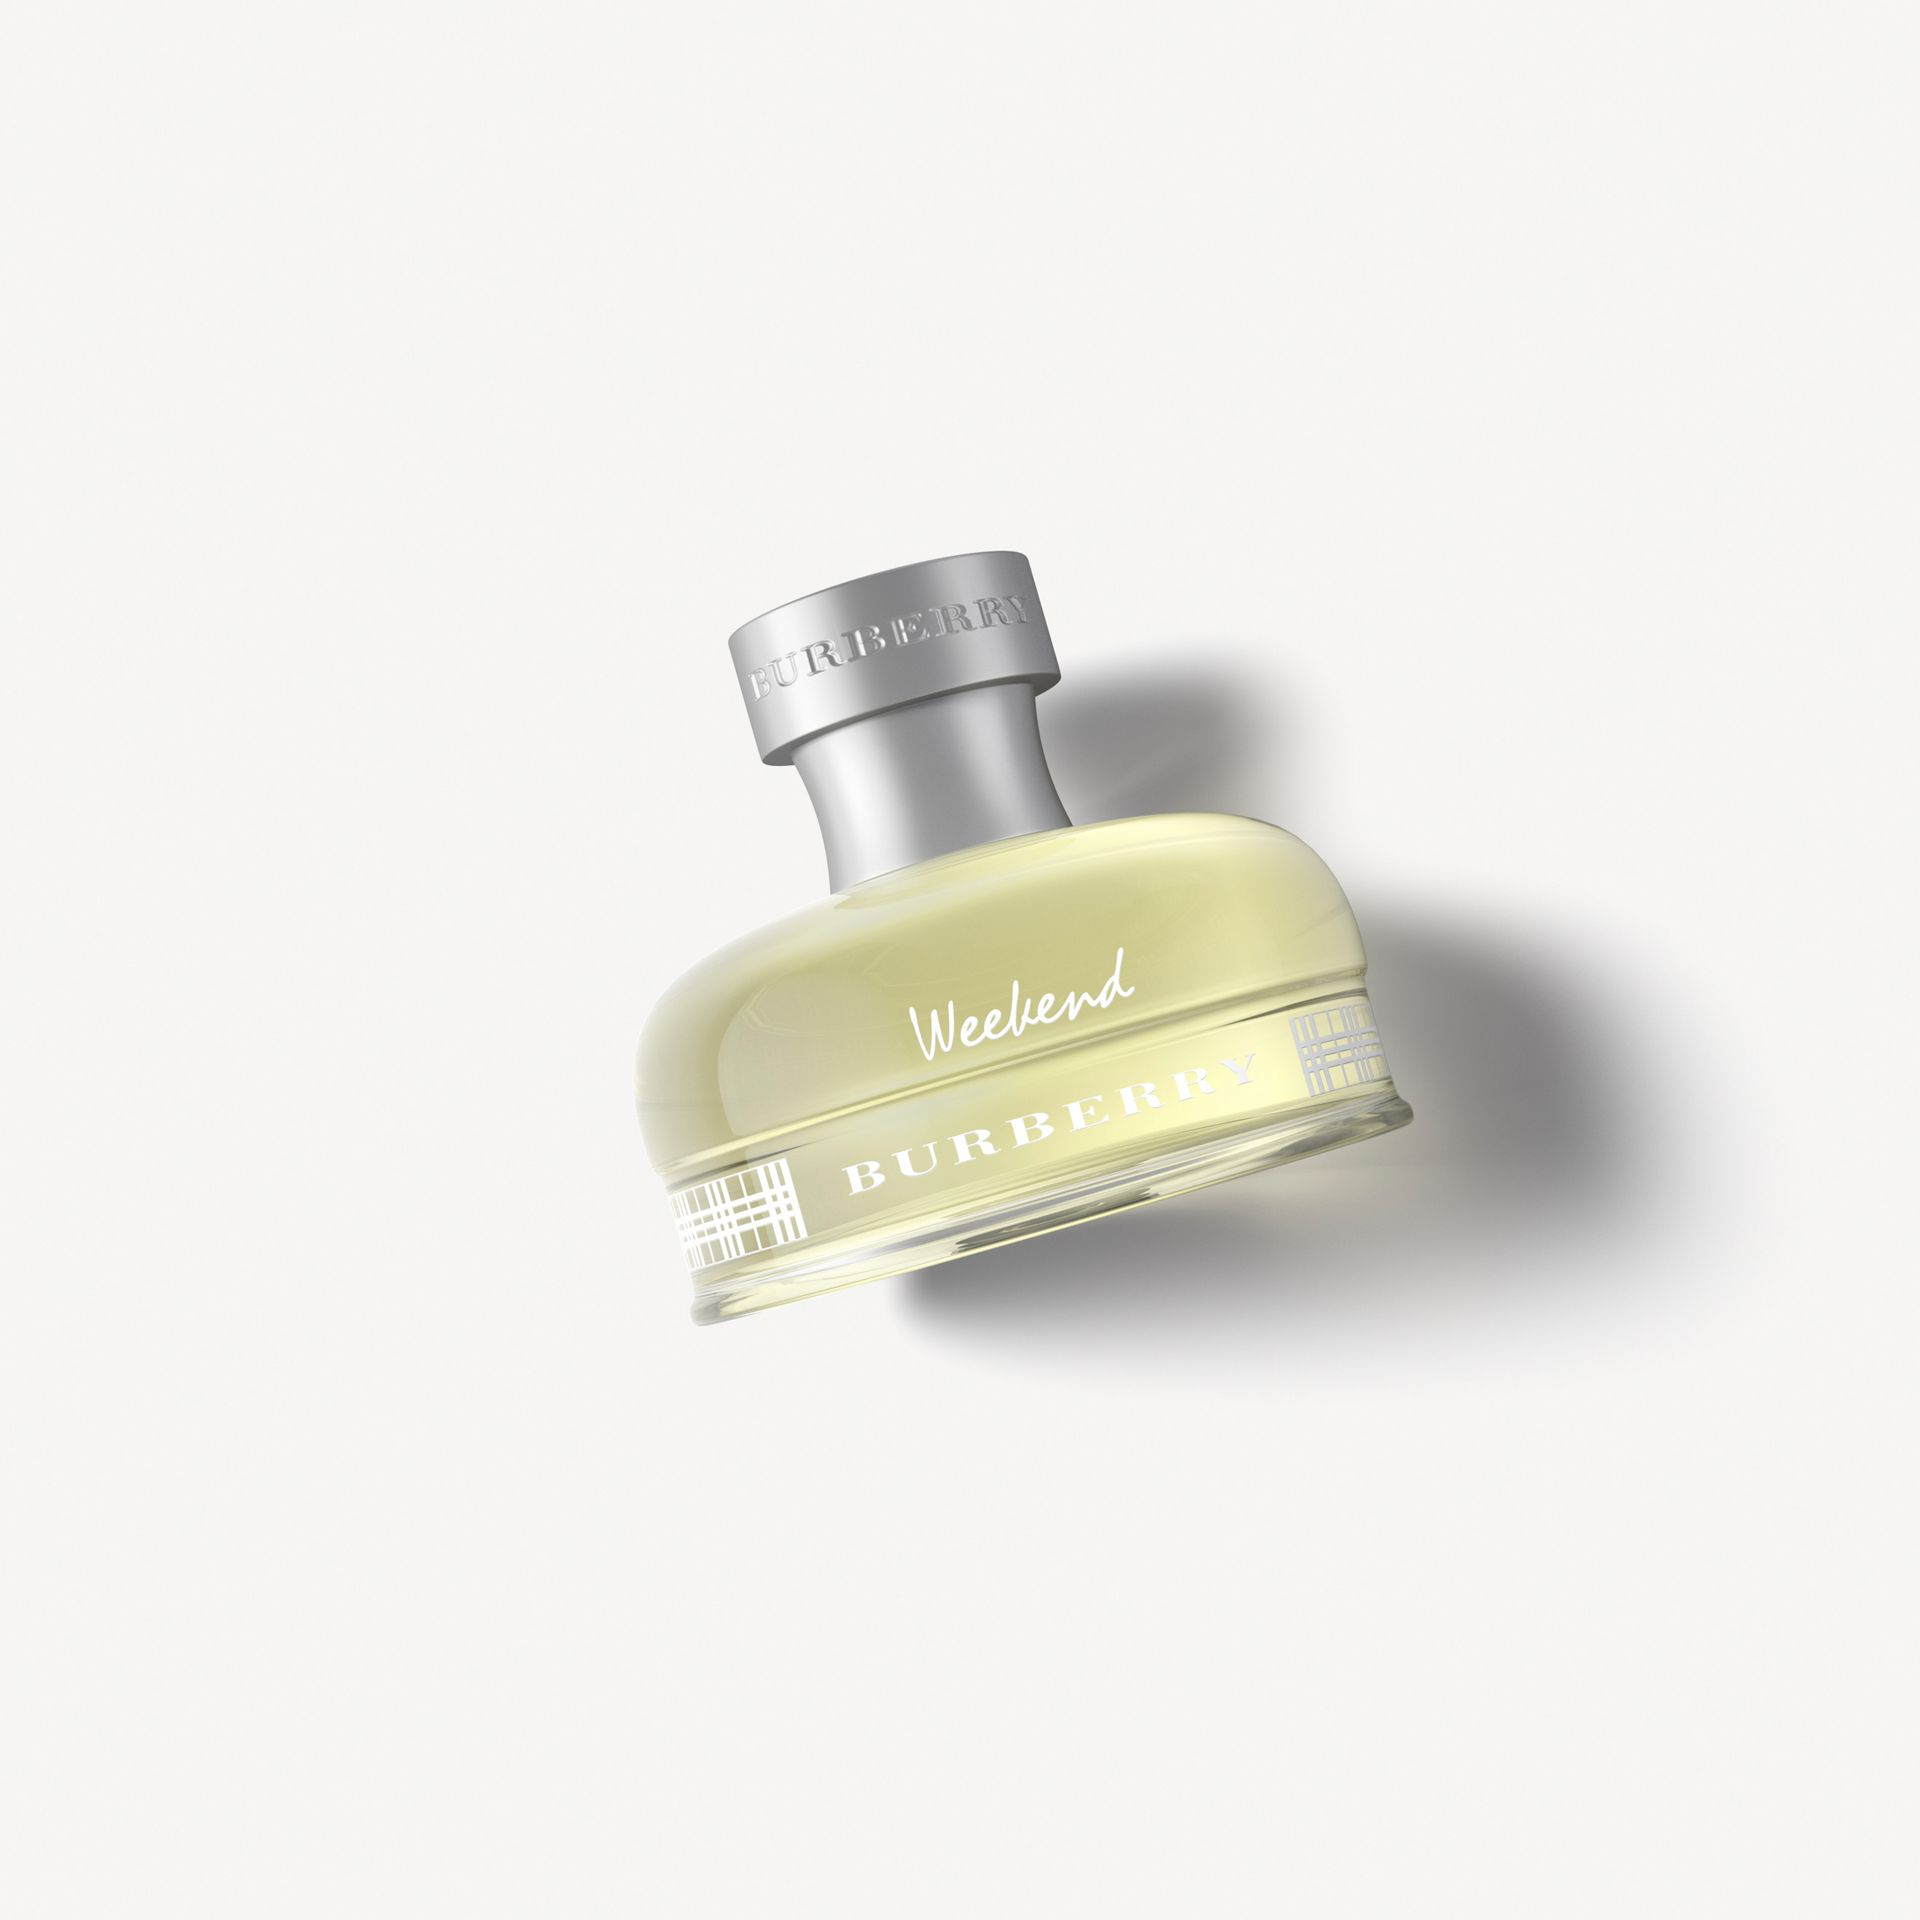 Burberry Weekend Eau de Parfum 50ml - Women | Burberry Singapore - gallery image 1